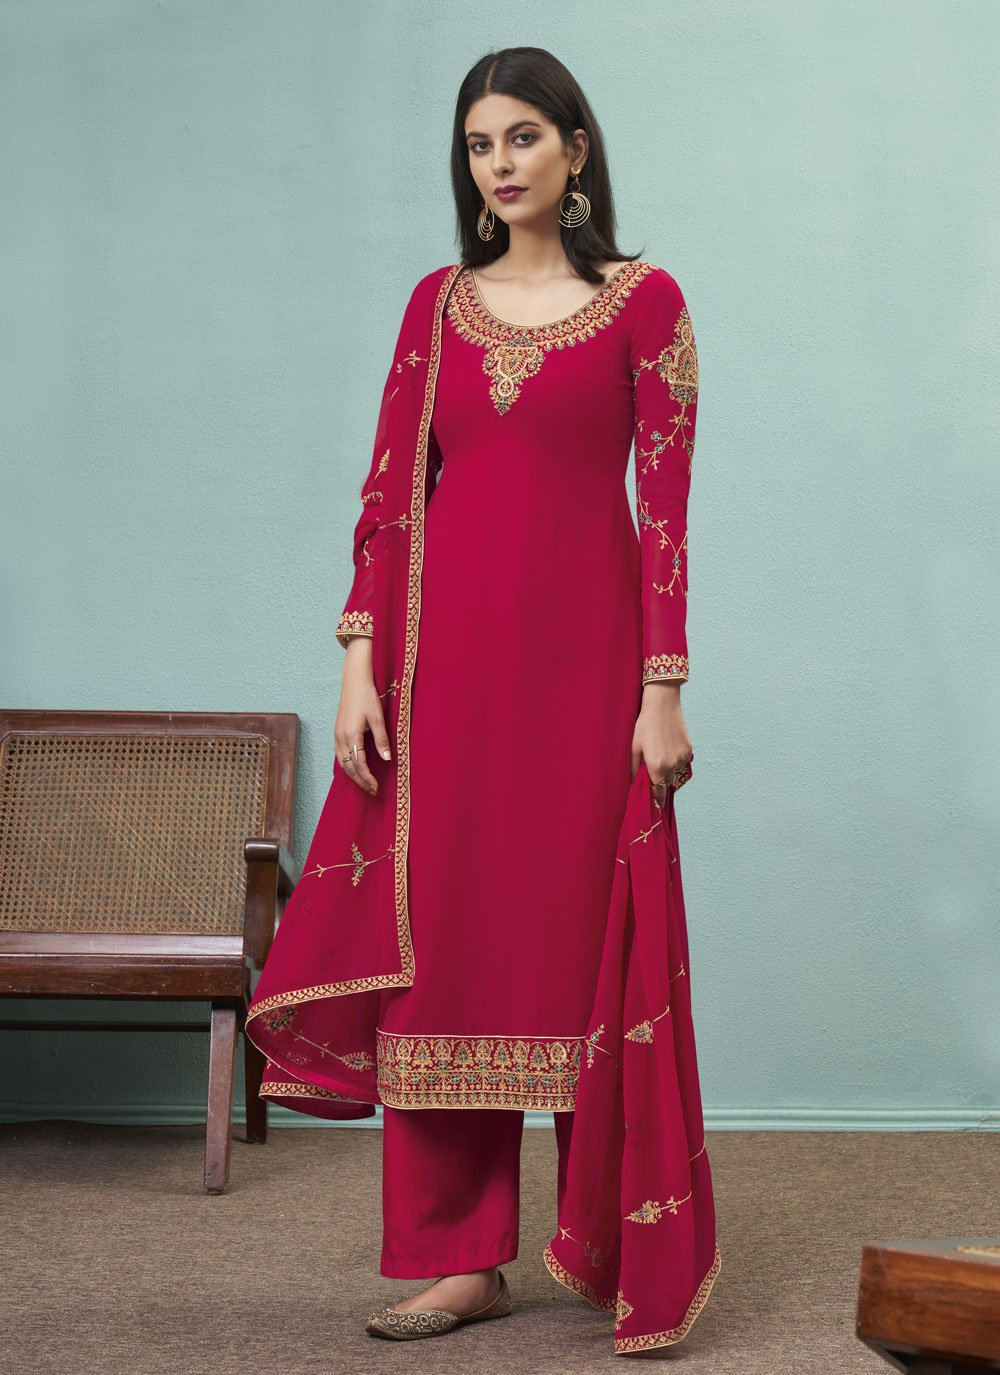 Embroidered Faux Georgette Designer Pakistani Suit in Rani